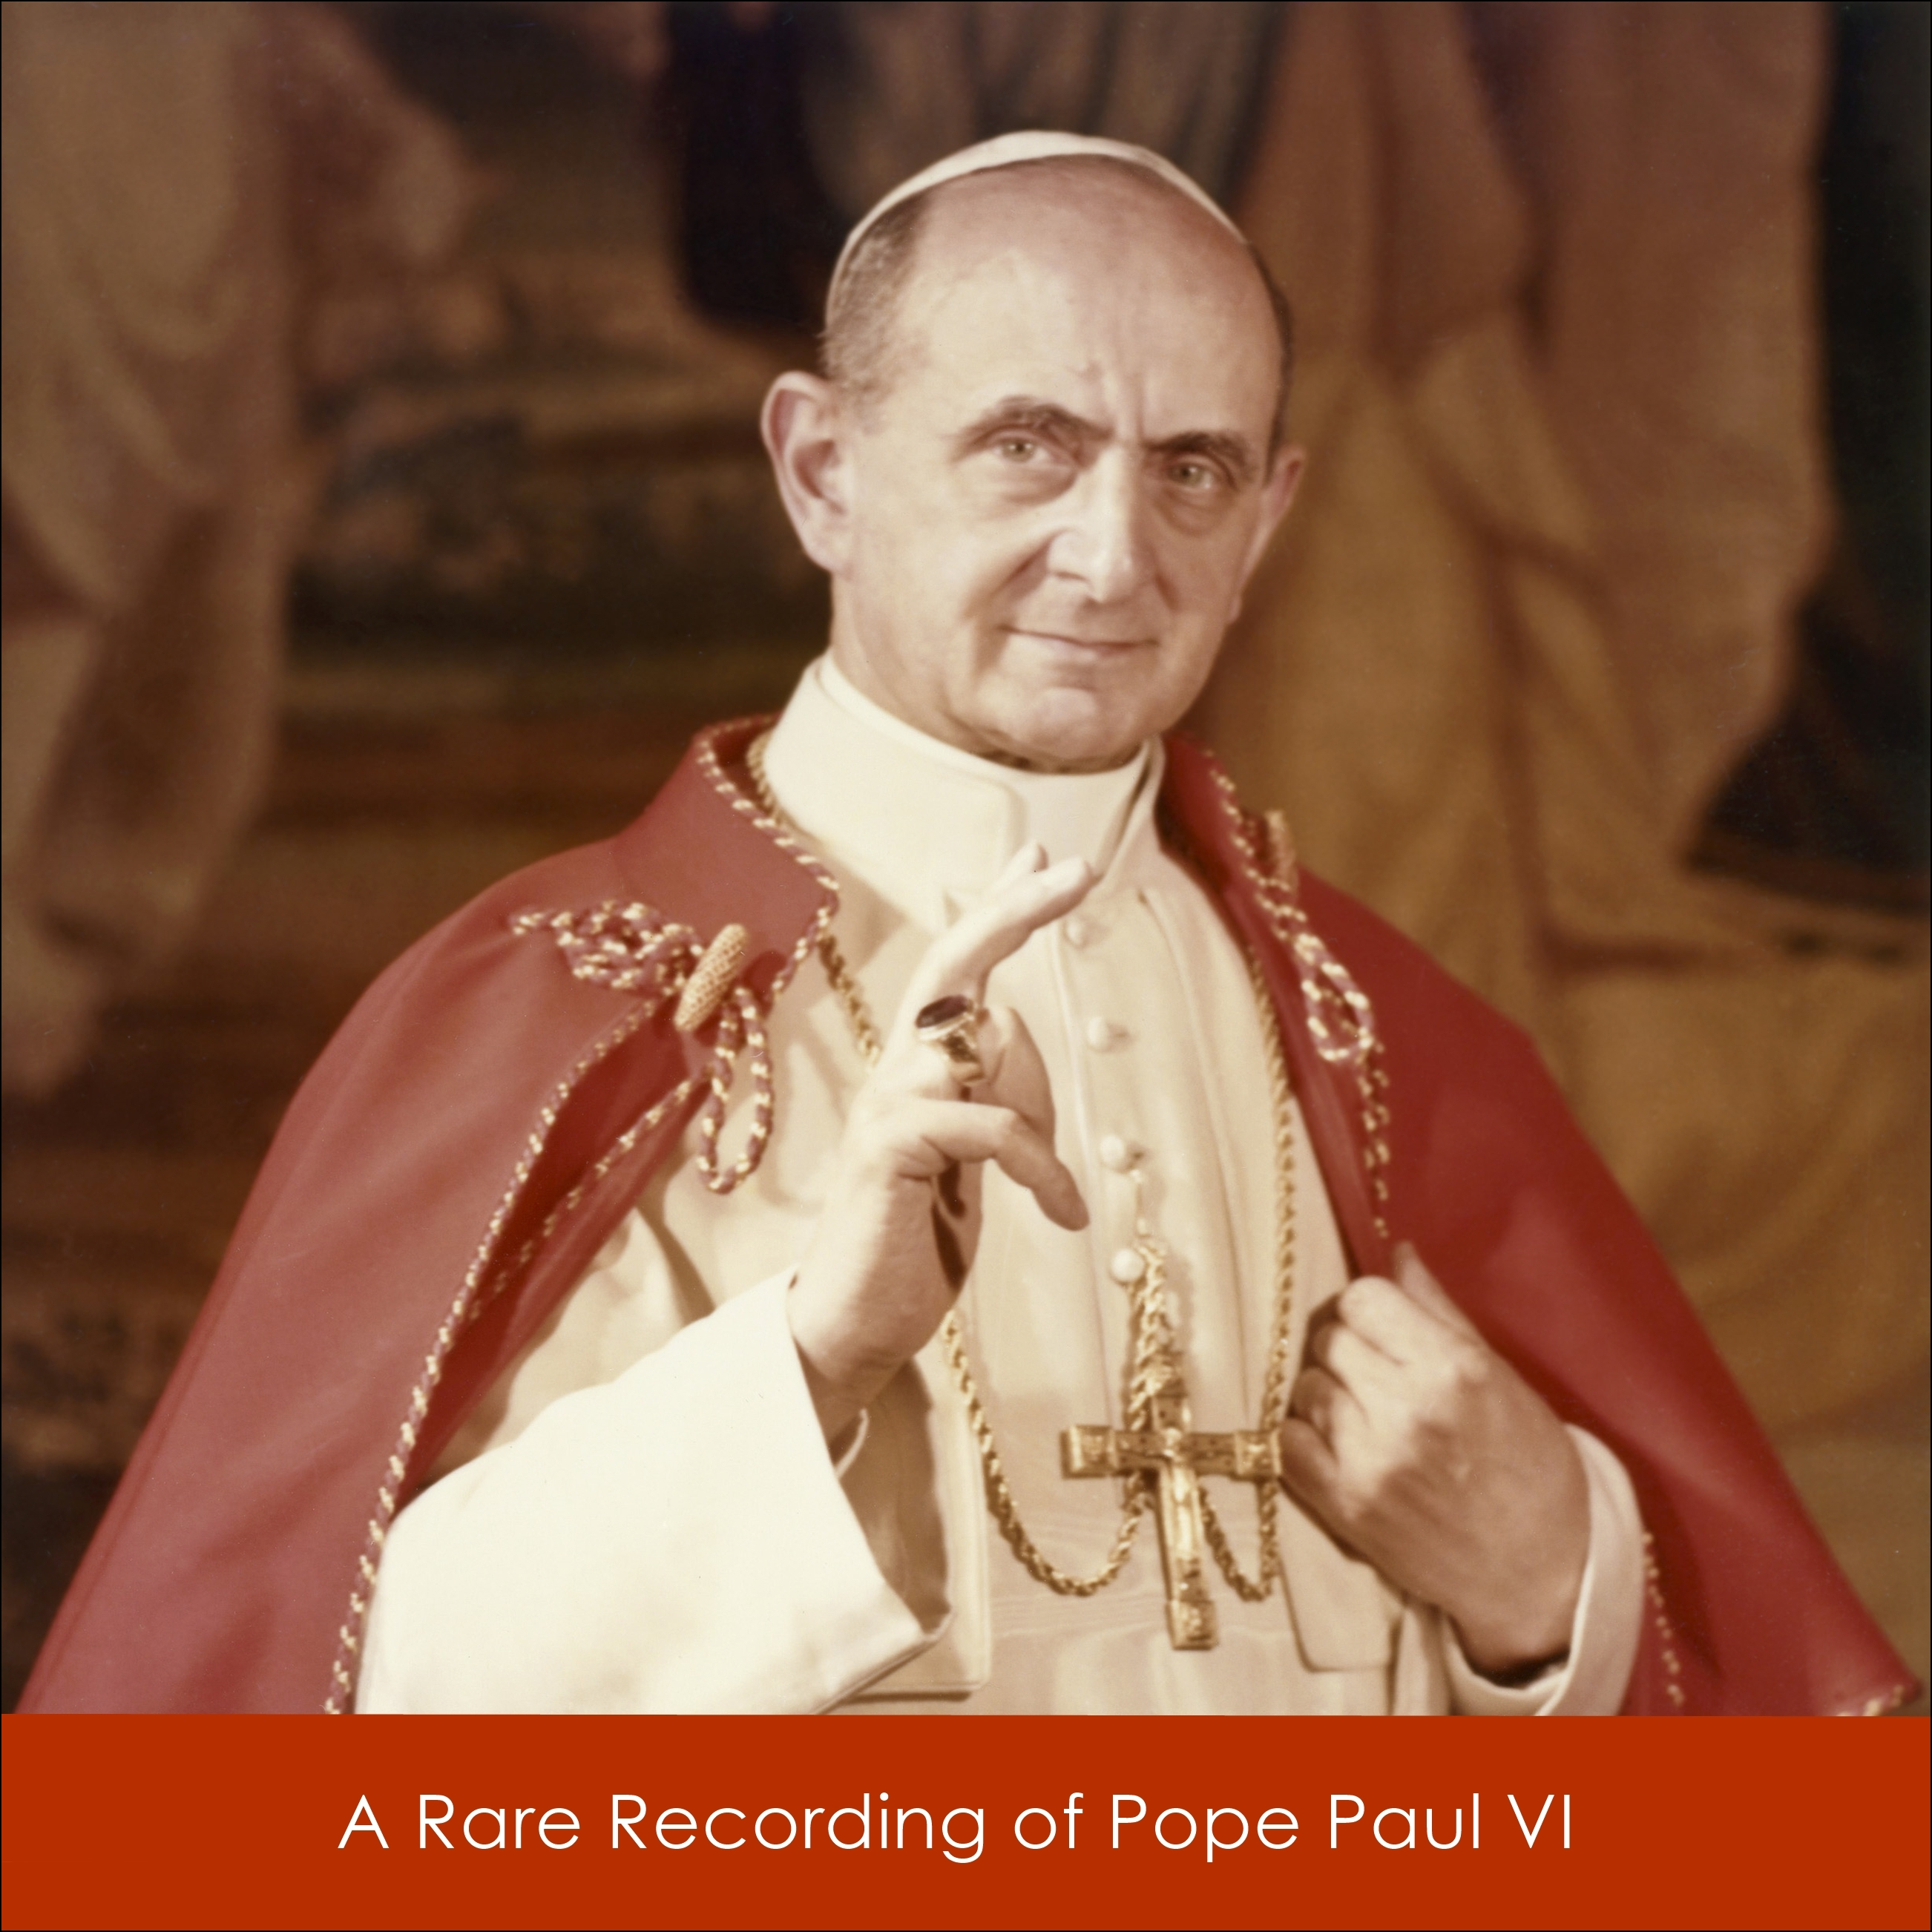 A Rare Recording of Pope Paul VI [DD]